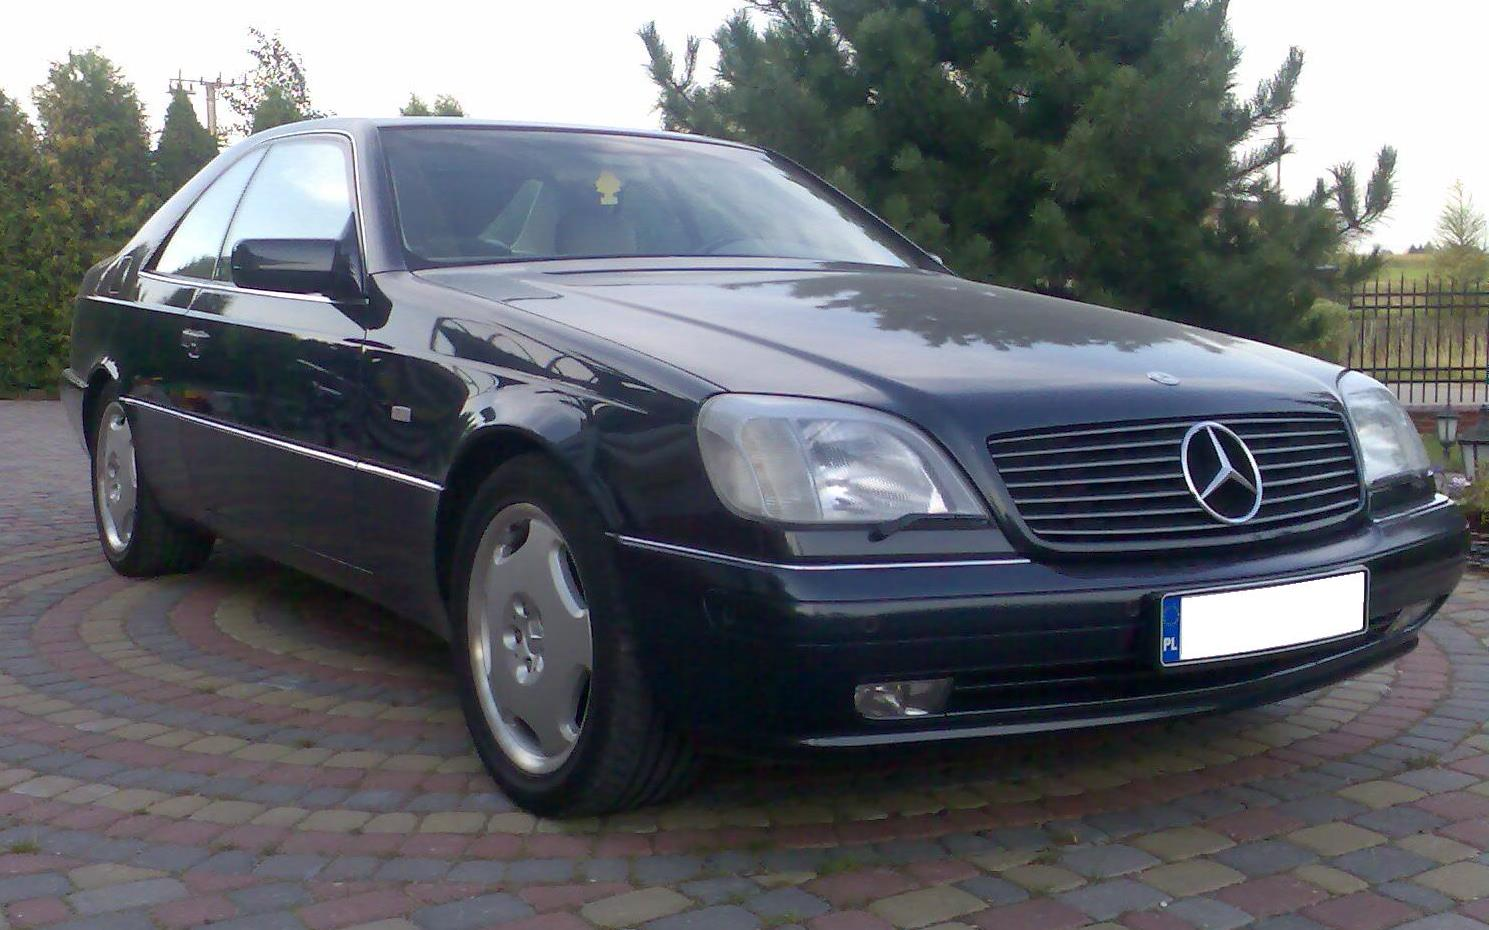 file mercedes cl500 wytr bowice4 jpg wikimedia commons. Black Bedroom Furniture Sets. Home Design Ideas